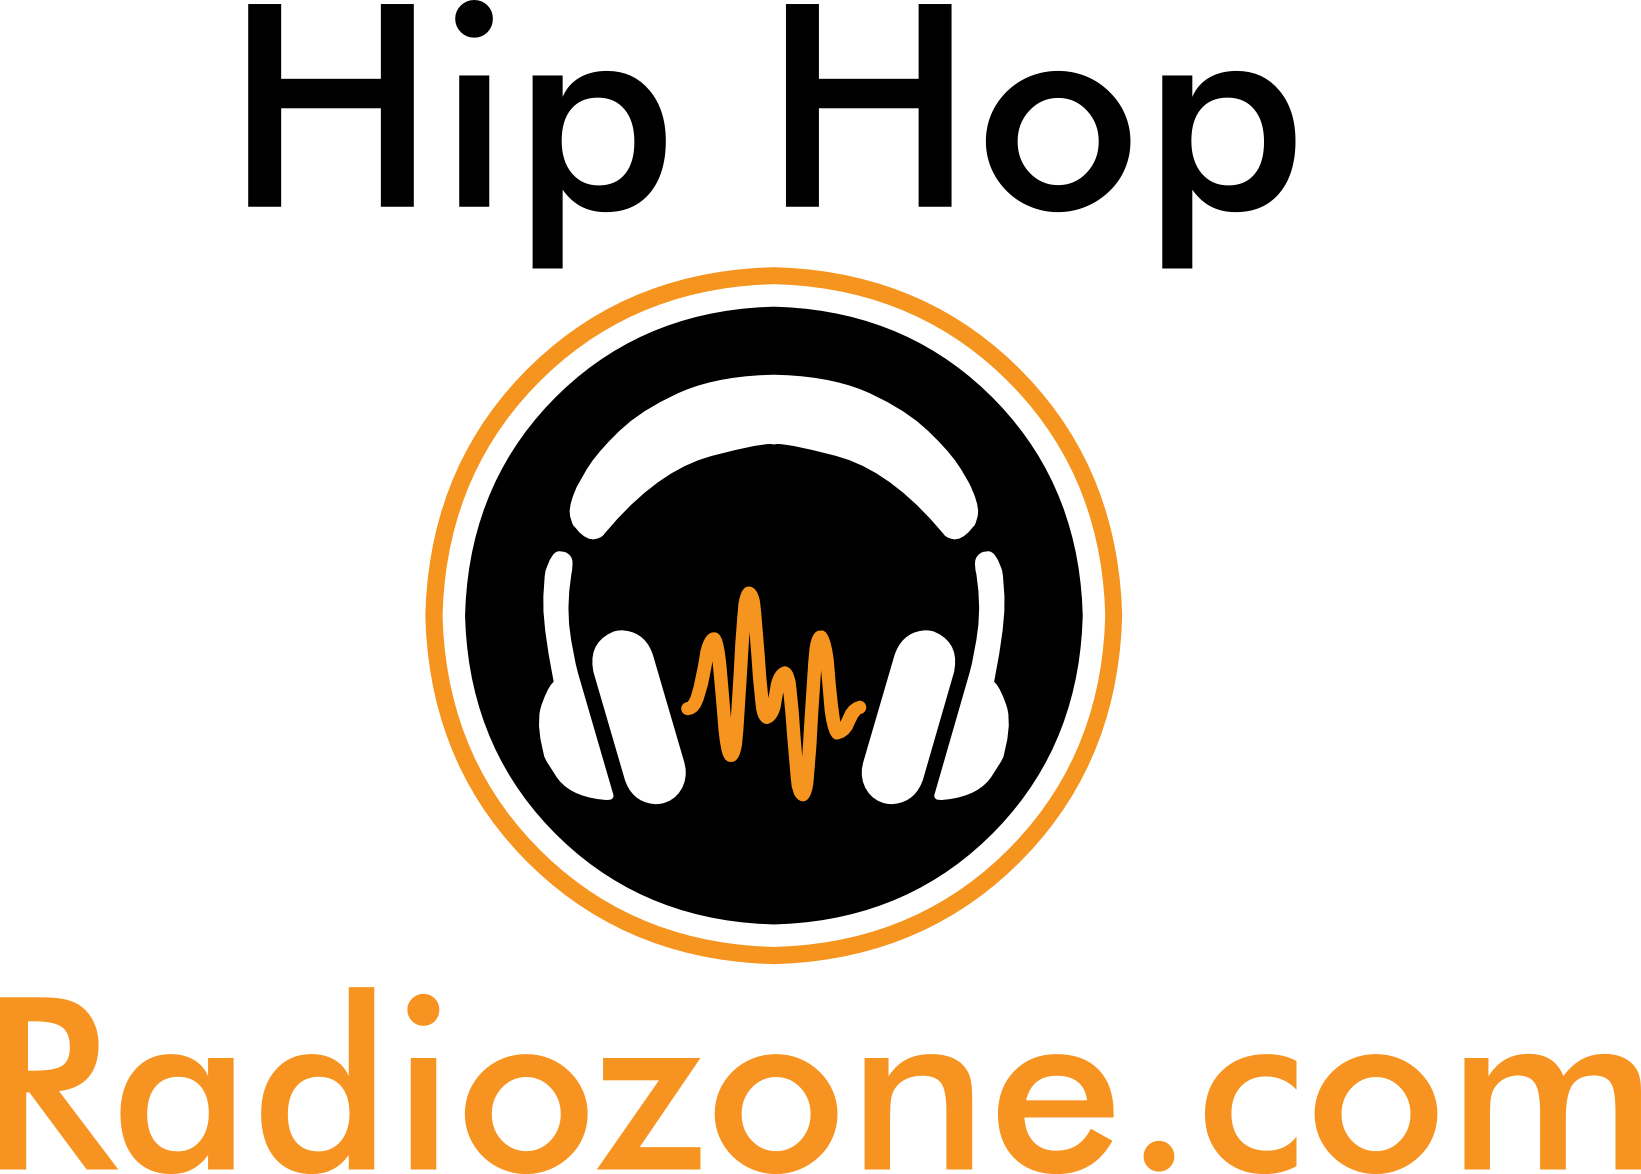 HIPHOP RADIOZONE